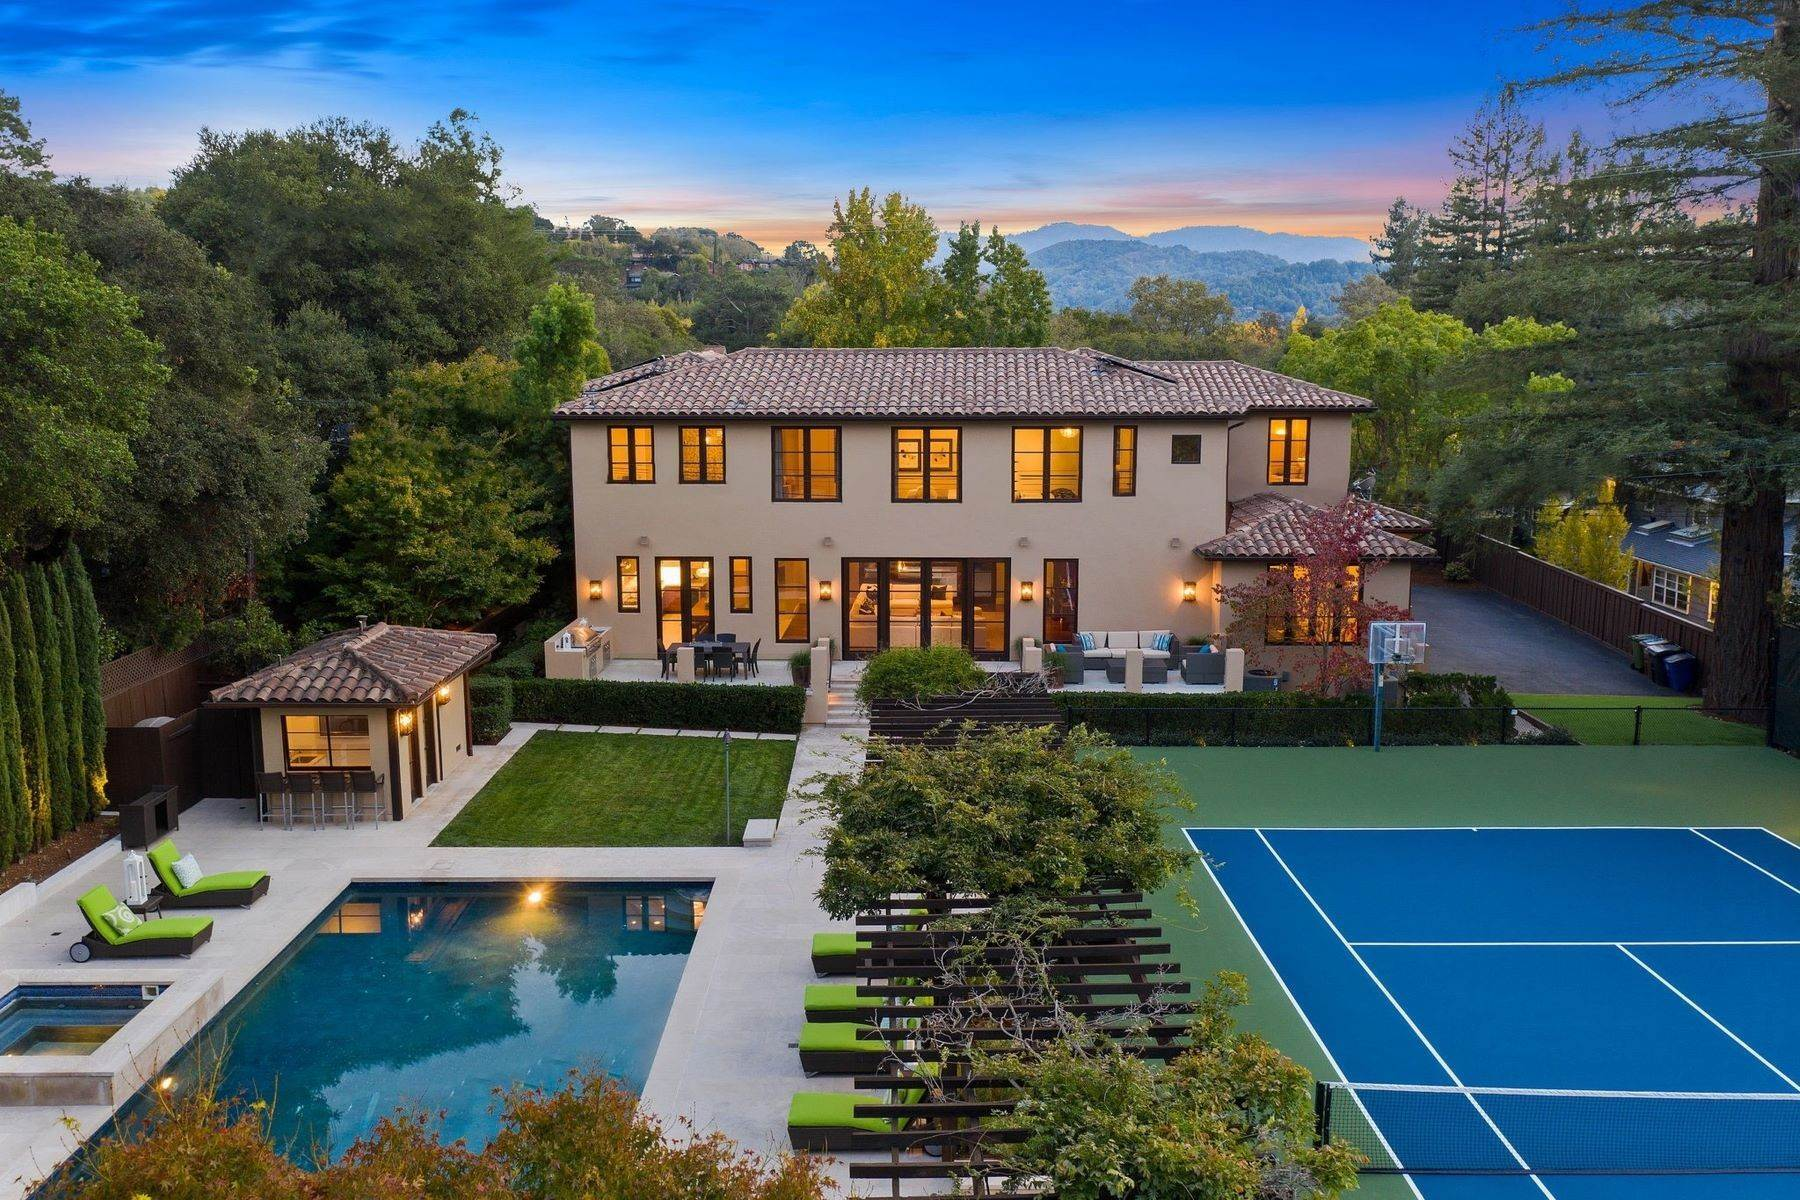 42. Single Family Homes for Sale at European Resort-Like Estate 109 Fawn Drive San Anselmo, California 94960 United States